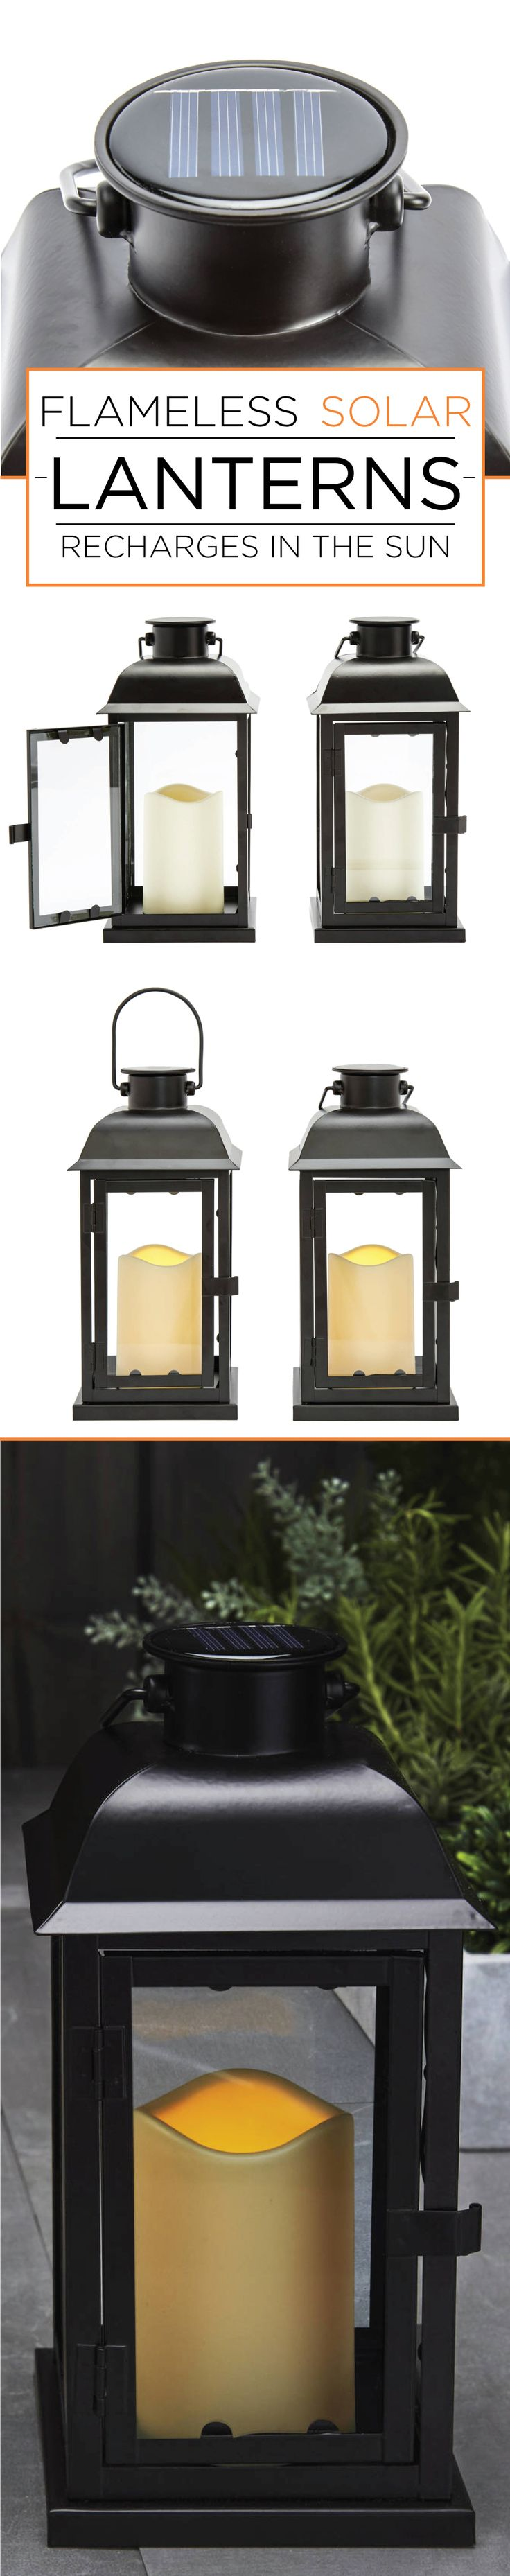 Add ambiance to your outdoor space with beautiful metal framed solar lanterns. These lanterns are flameless and create a pleasant flickering glimmer like a real candle. Set them in your backyard garden or spruce up your patio table with these Solar 11'' Black Metal Flameless Lantern, set of two by Lights.com